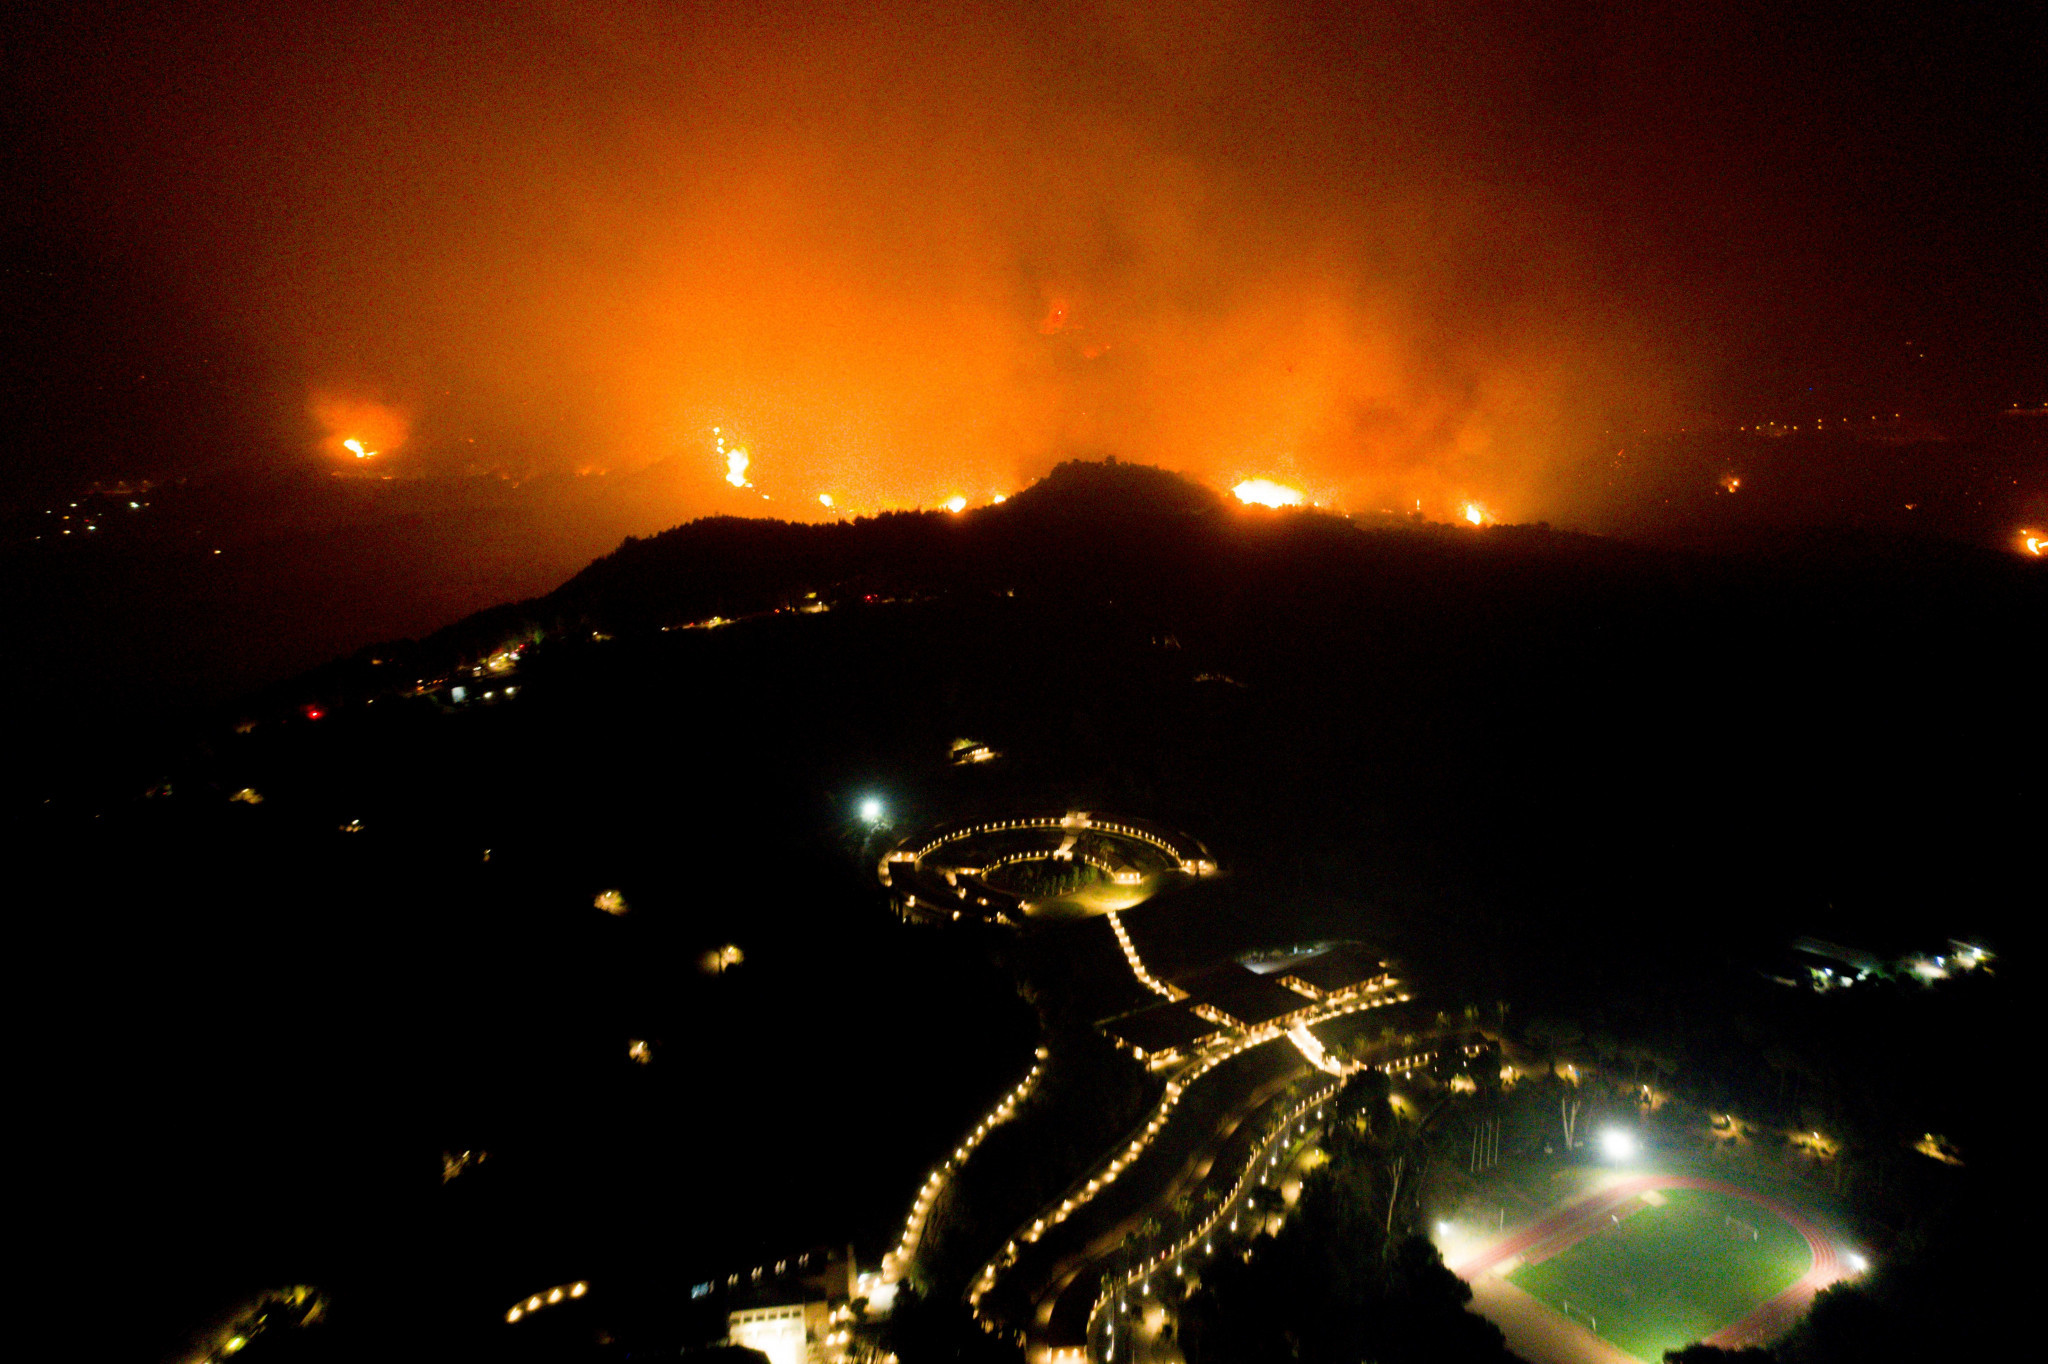 Wildfires this year came close to the IOA ©Getty Images